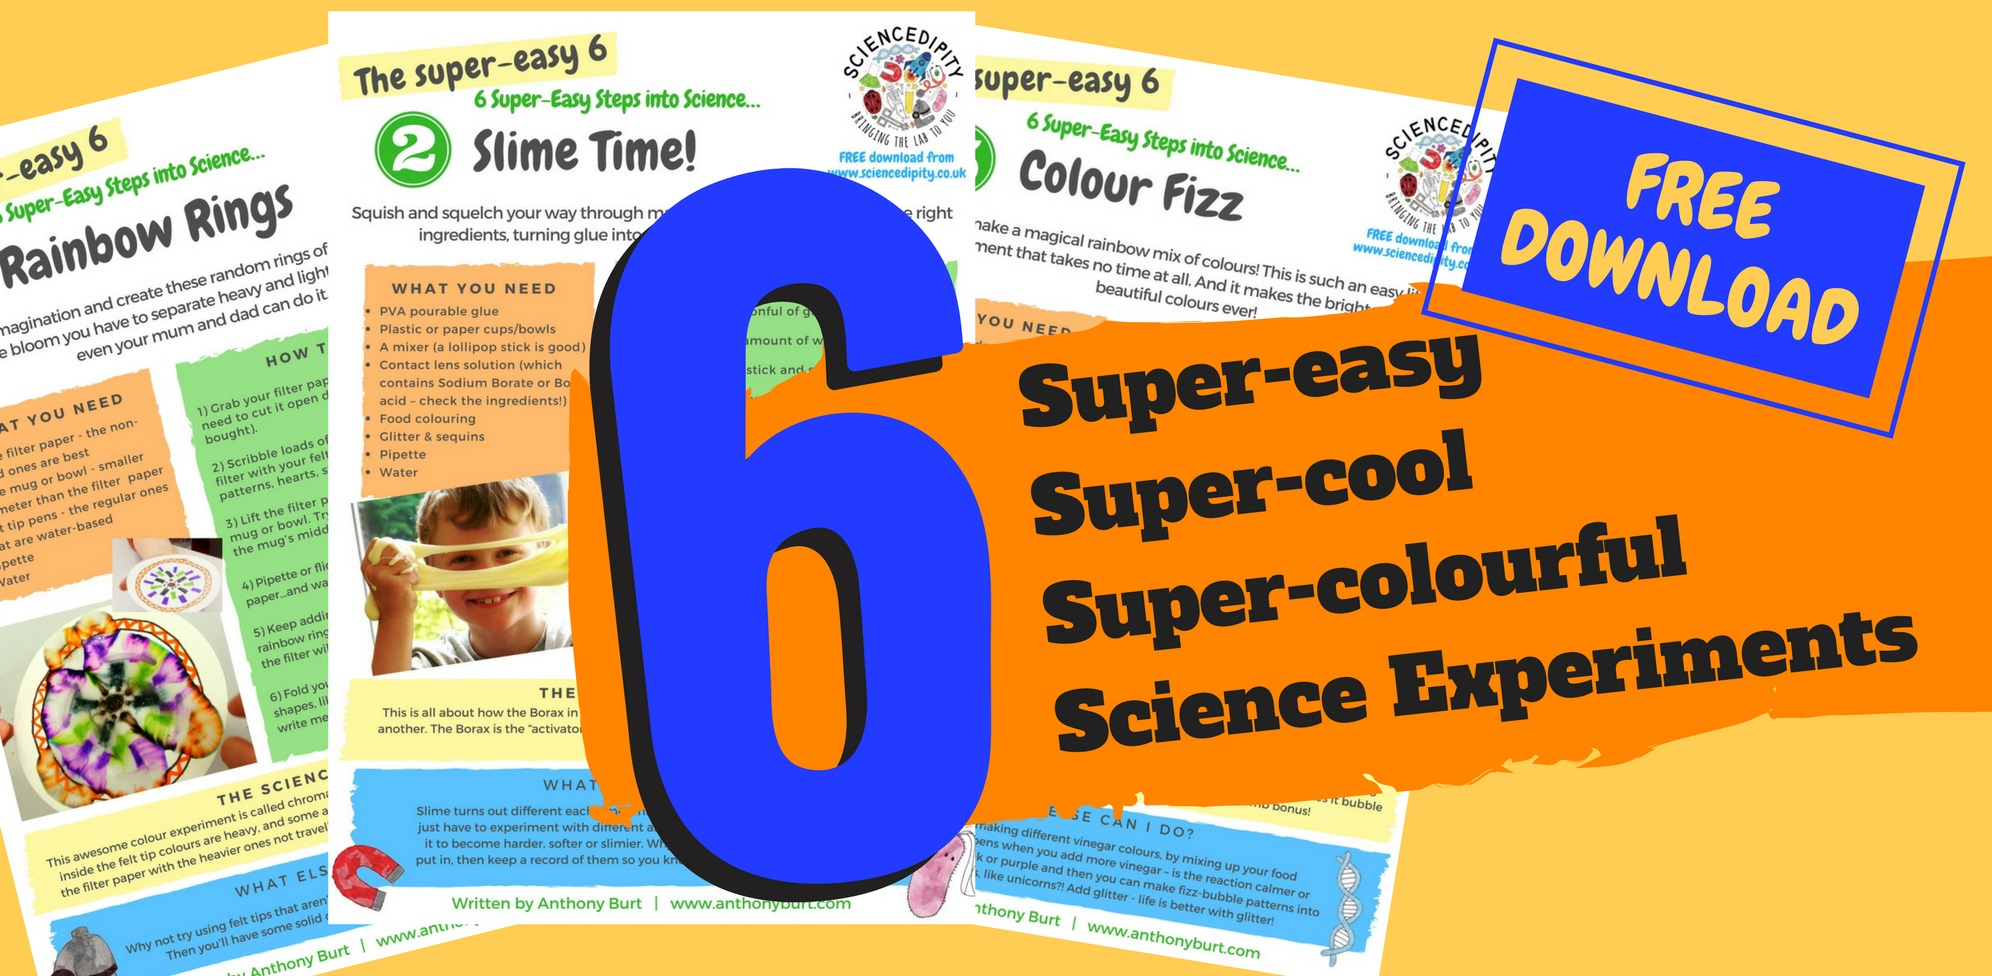 6 super easy science experiments